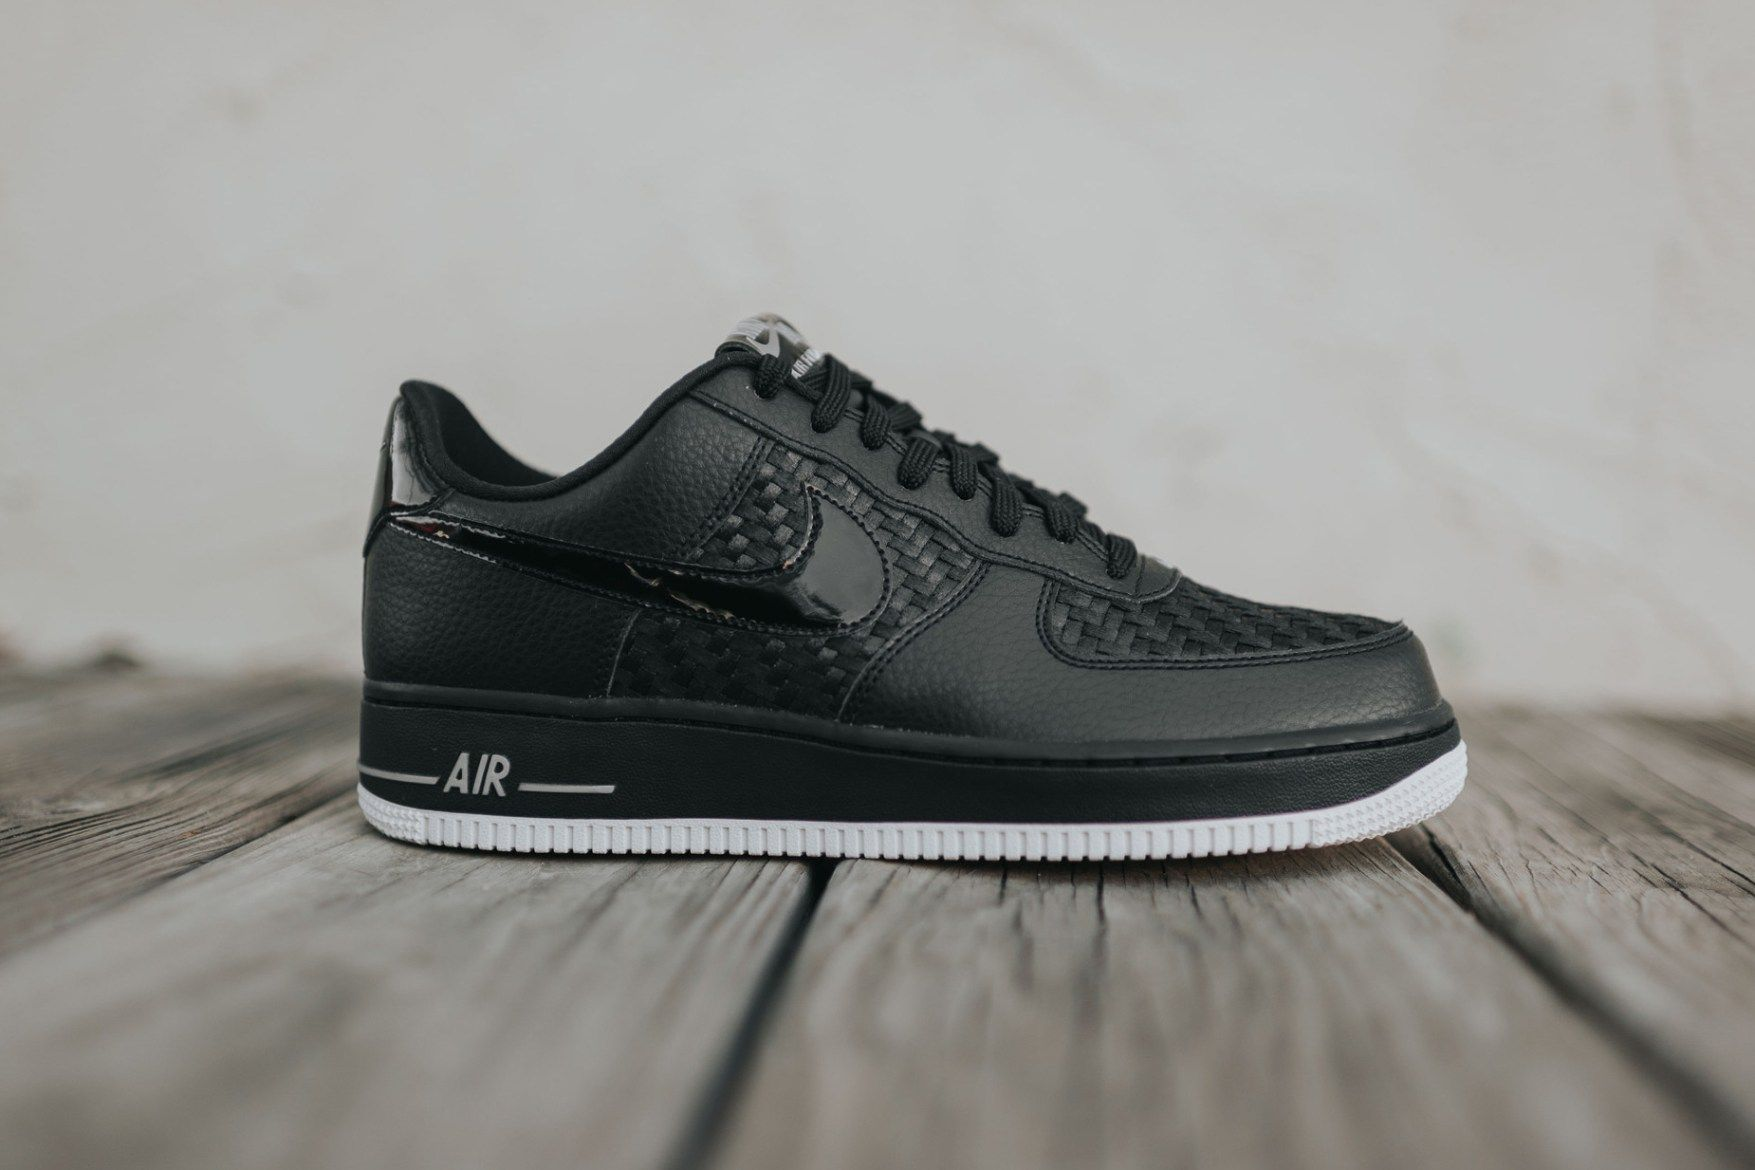 sports shoes a914a 363e9 ... First Look At The Nike Air Force 1 Low 07 LV8 Woven ...